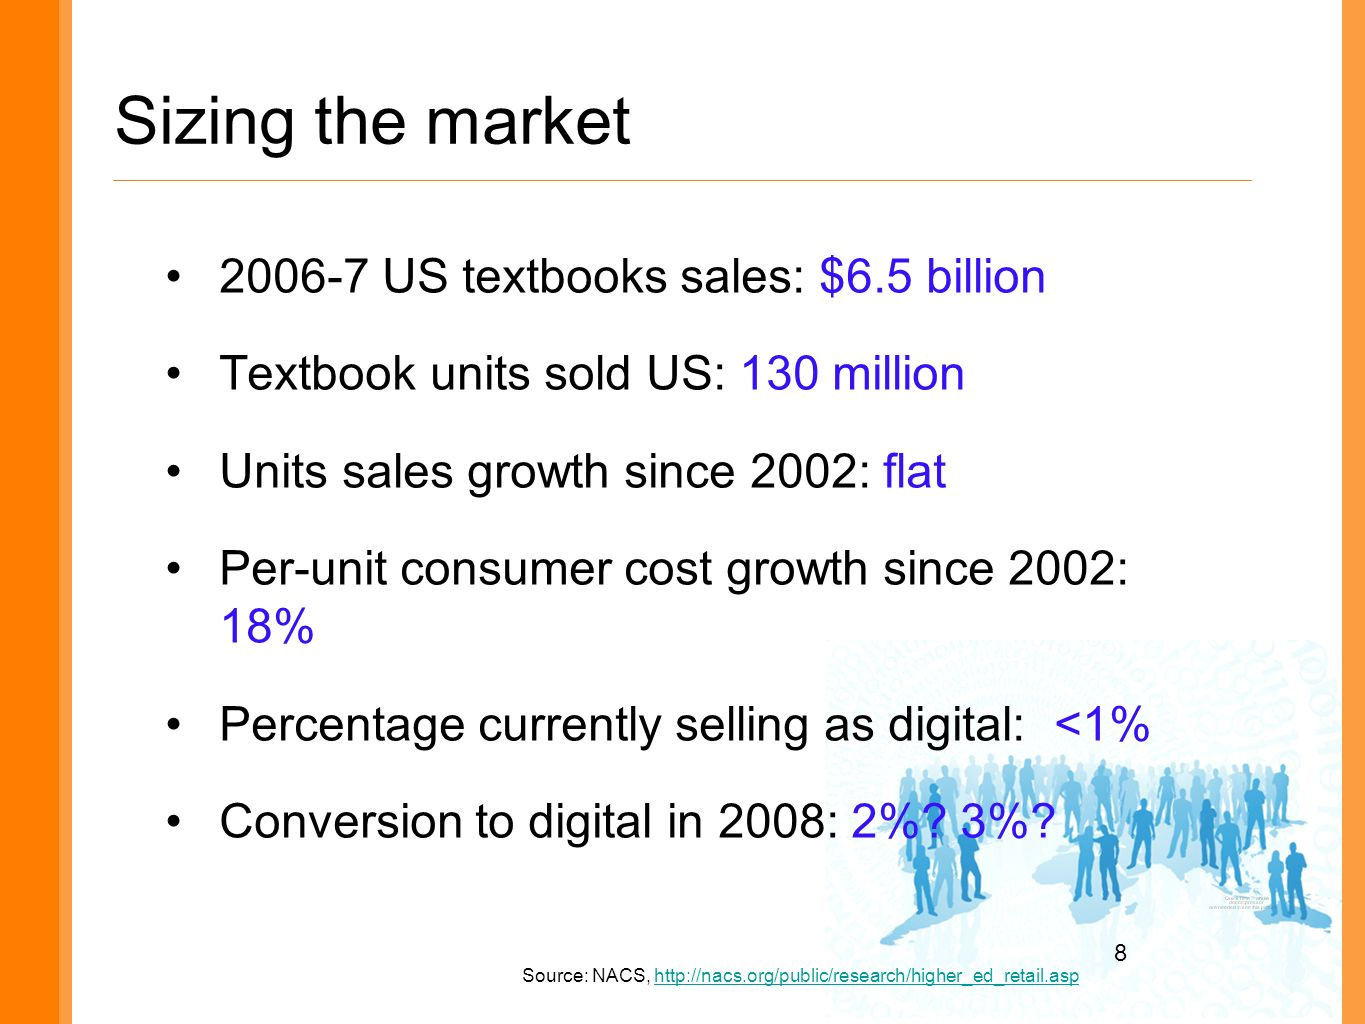 8 Sizing the market US textbooks sales: $6.5 billion Textbook units sold US: 130 million Units sales growth since 2002: flat Per-unit consumer cost growth since 2002: 18% Percentage currently selling as digital: <1% Conversion to digital in 2008: 2%.